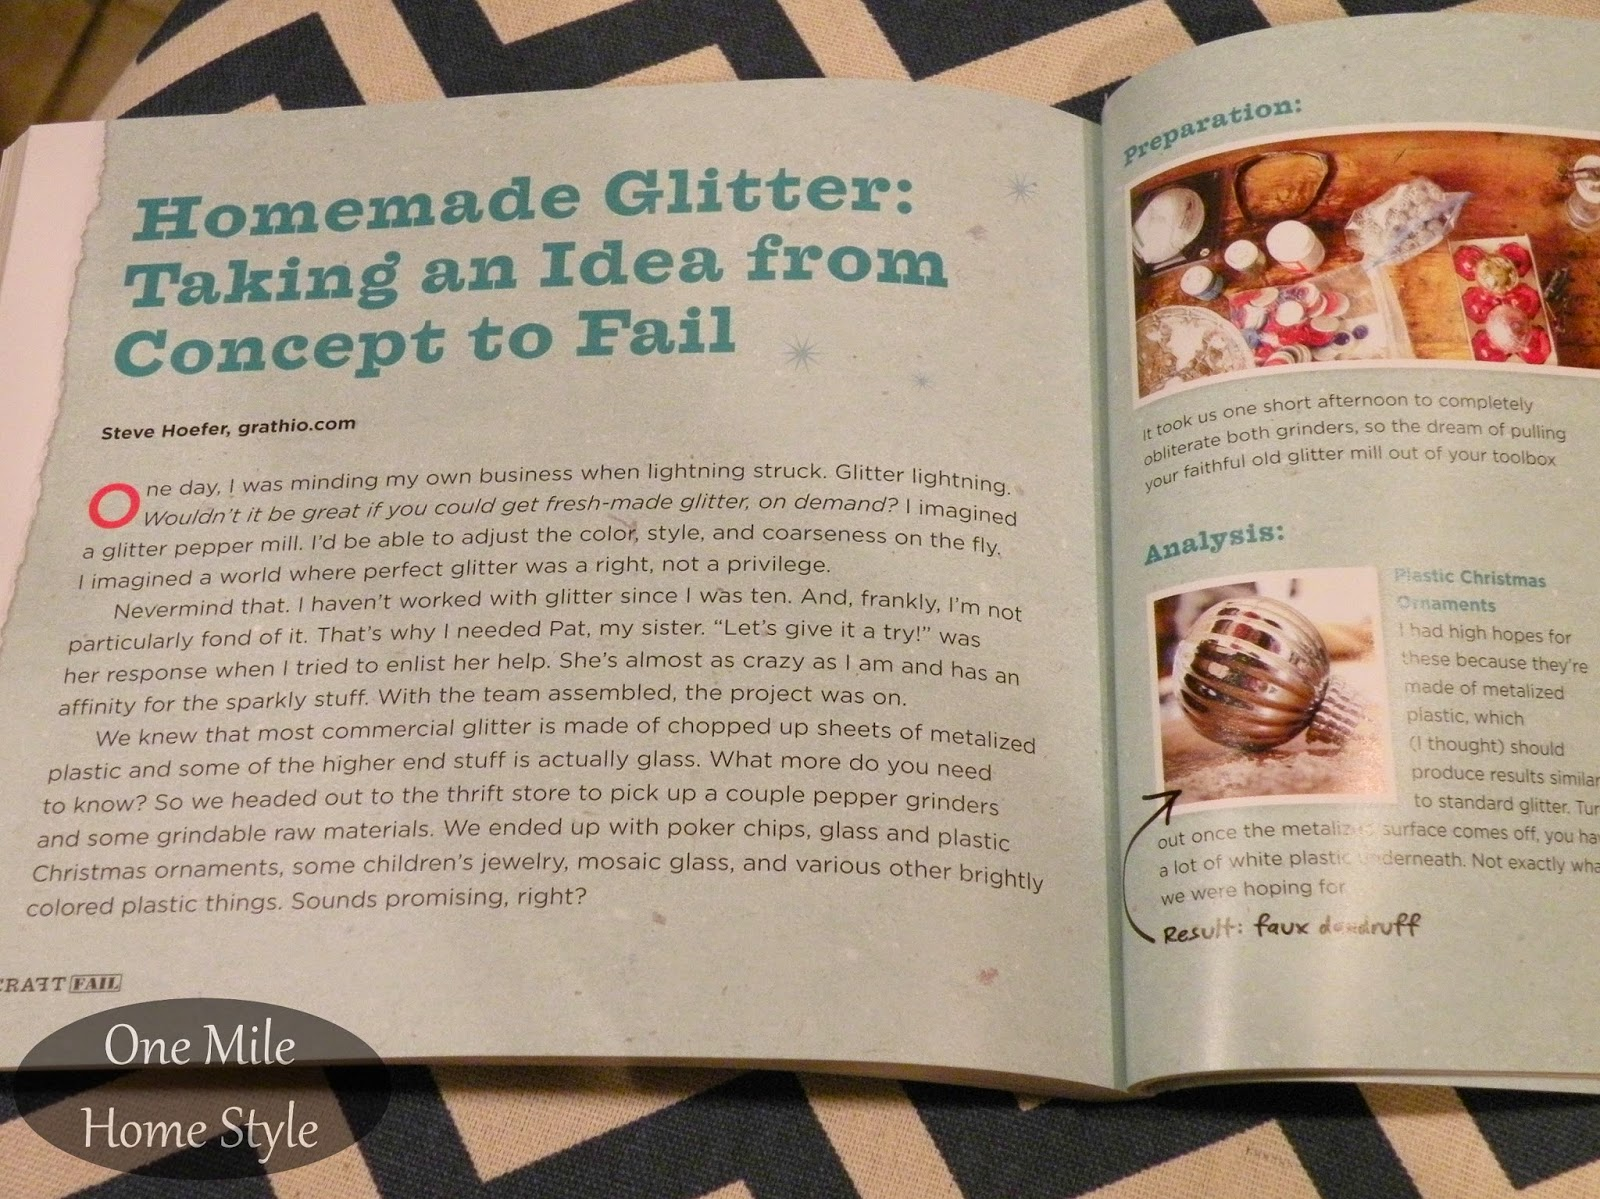 CraftFail - Book Review: Homemade Glitter